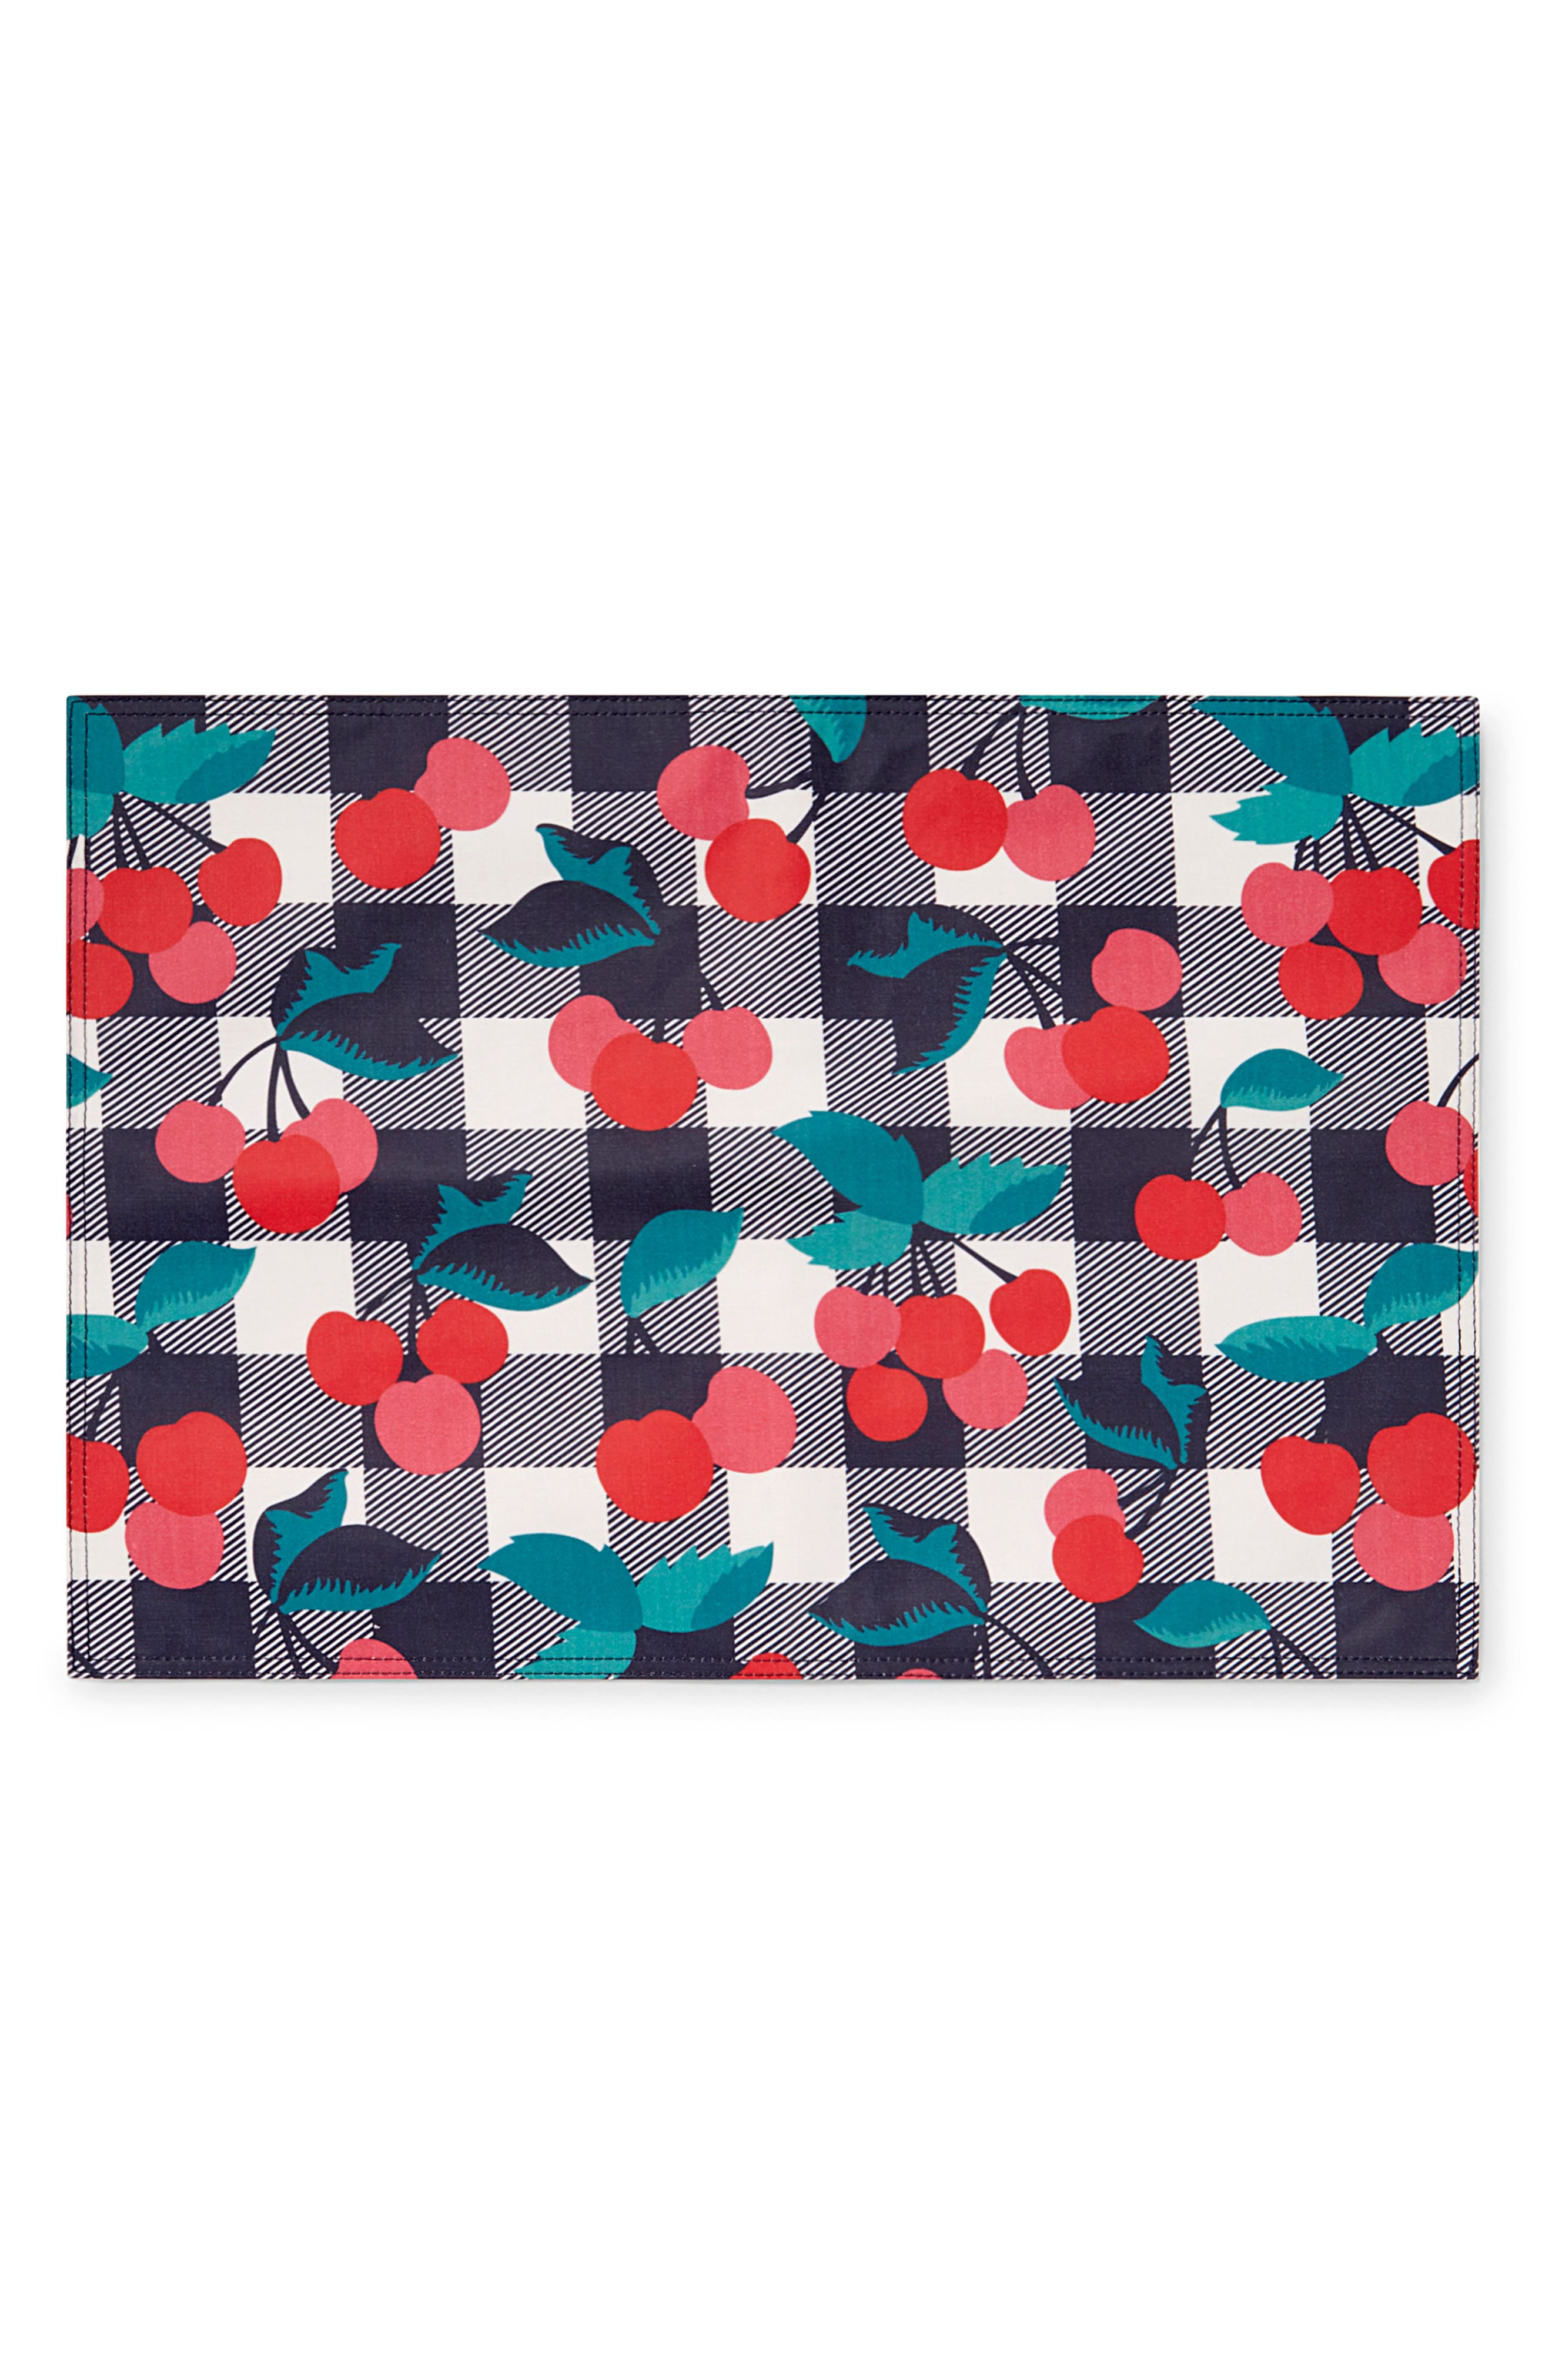 Set of 4 Cherry Print Placemats,                             Main thumbnail 1, color,                             600